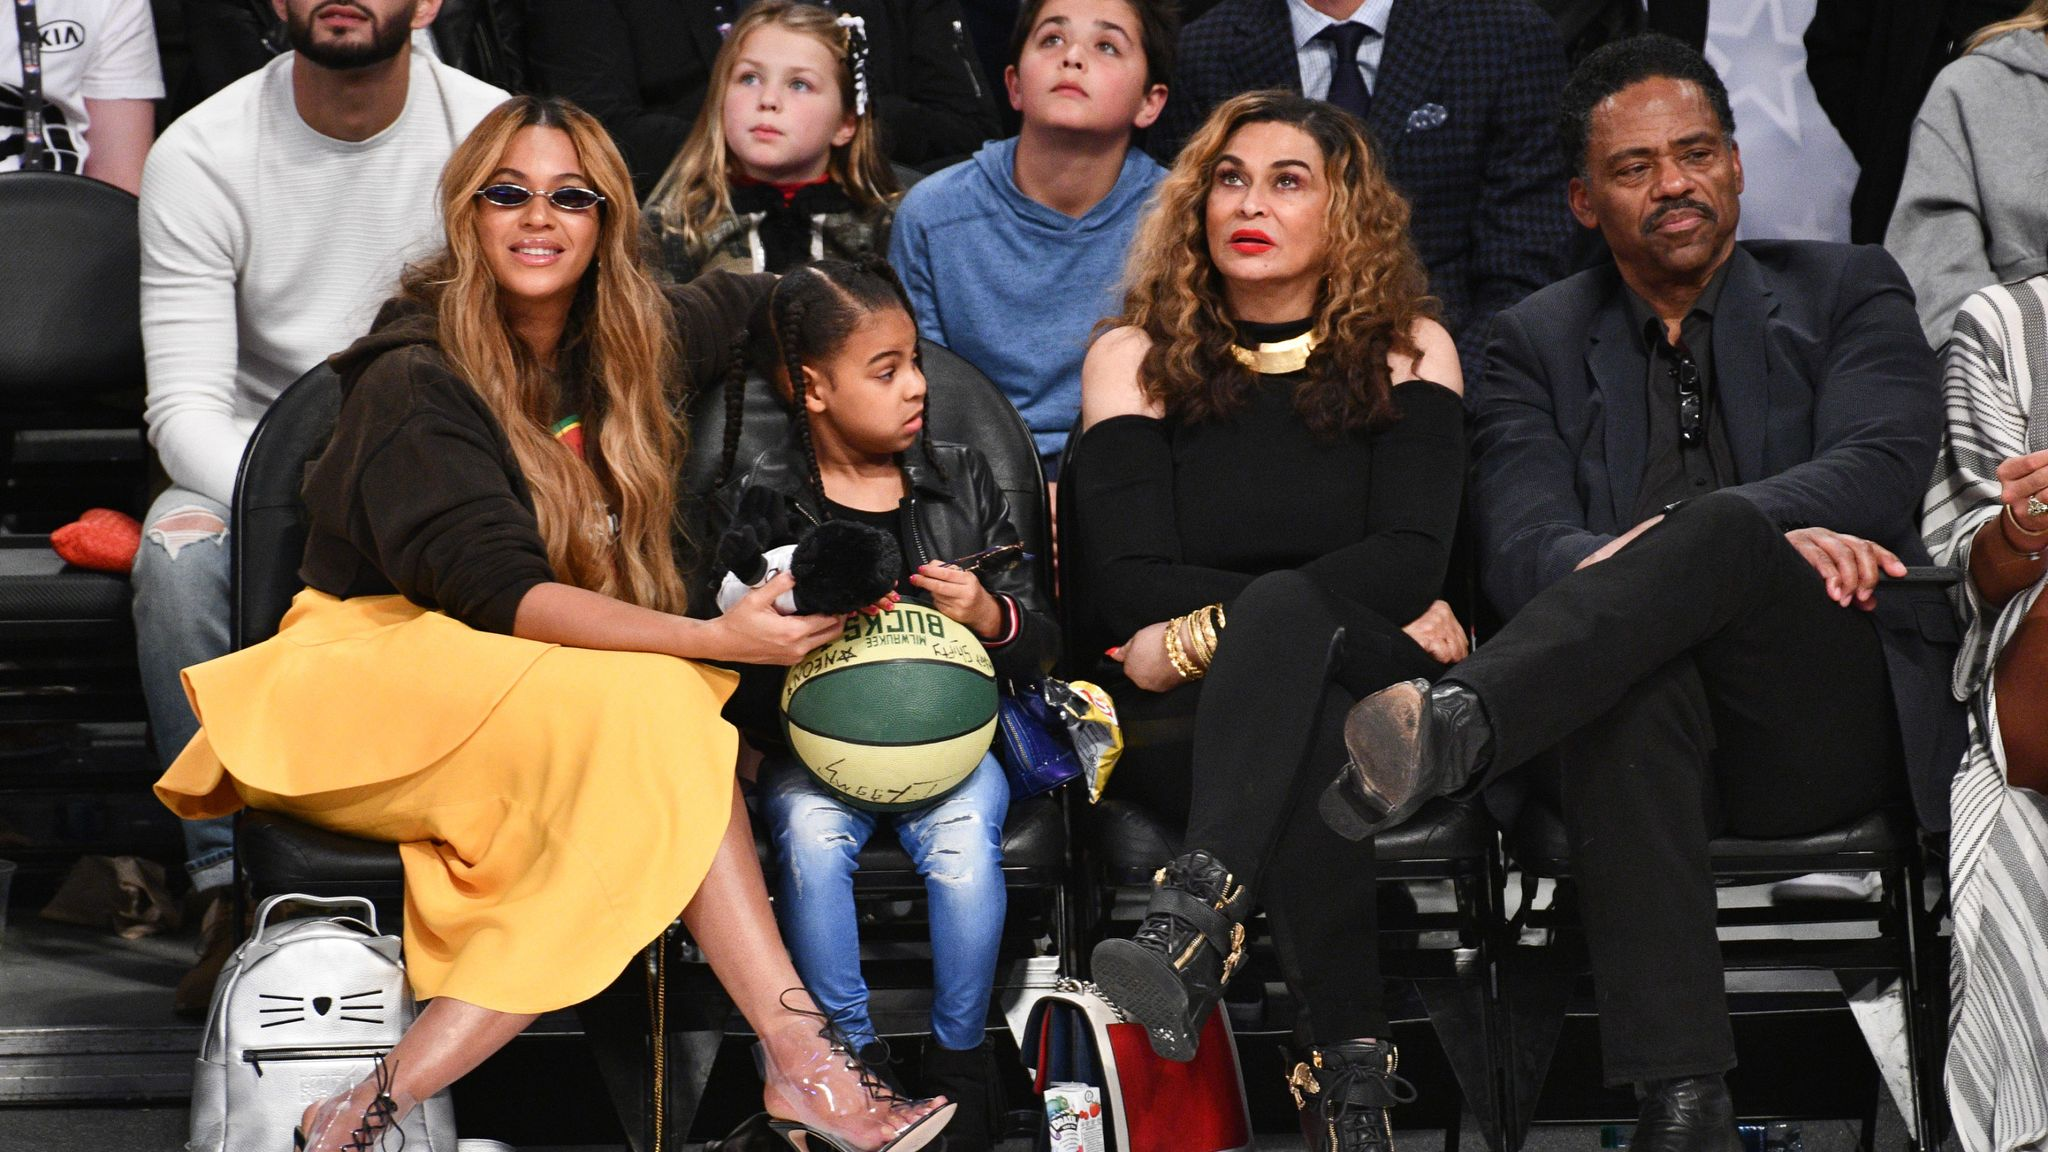 Beyonce calls daughter, 7, an 'icon' in trademark dispute